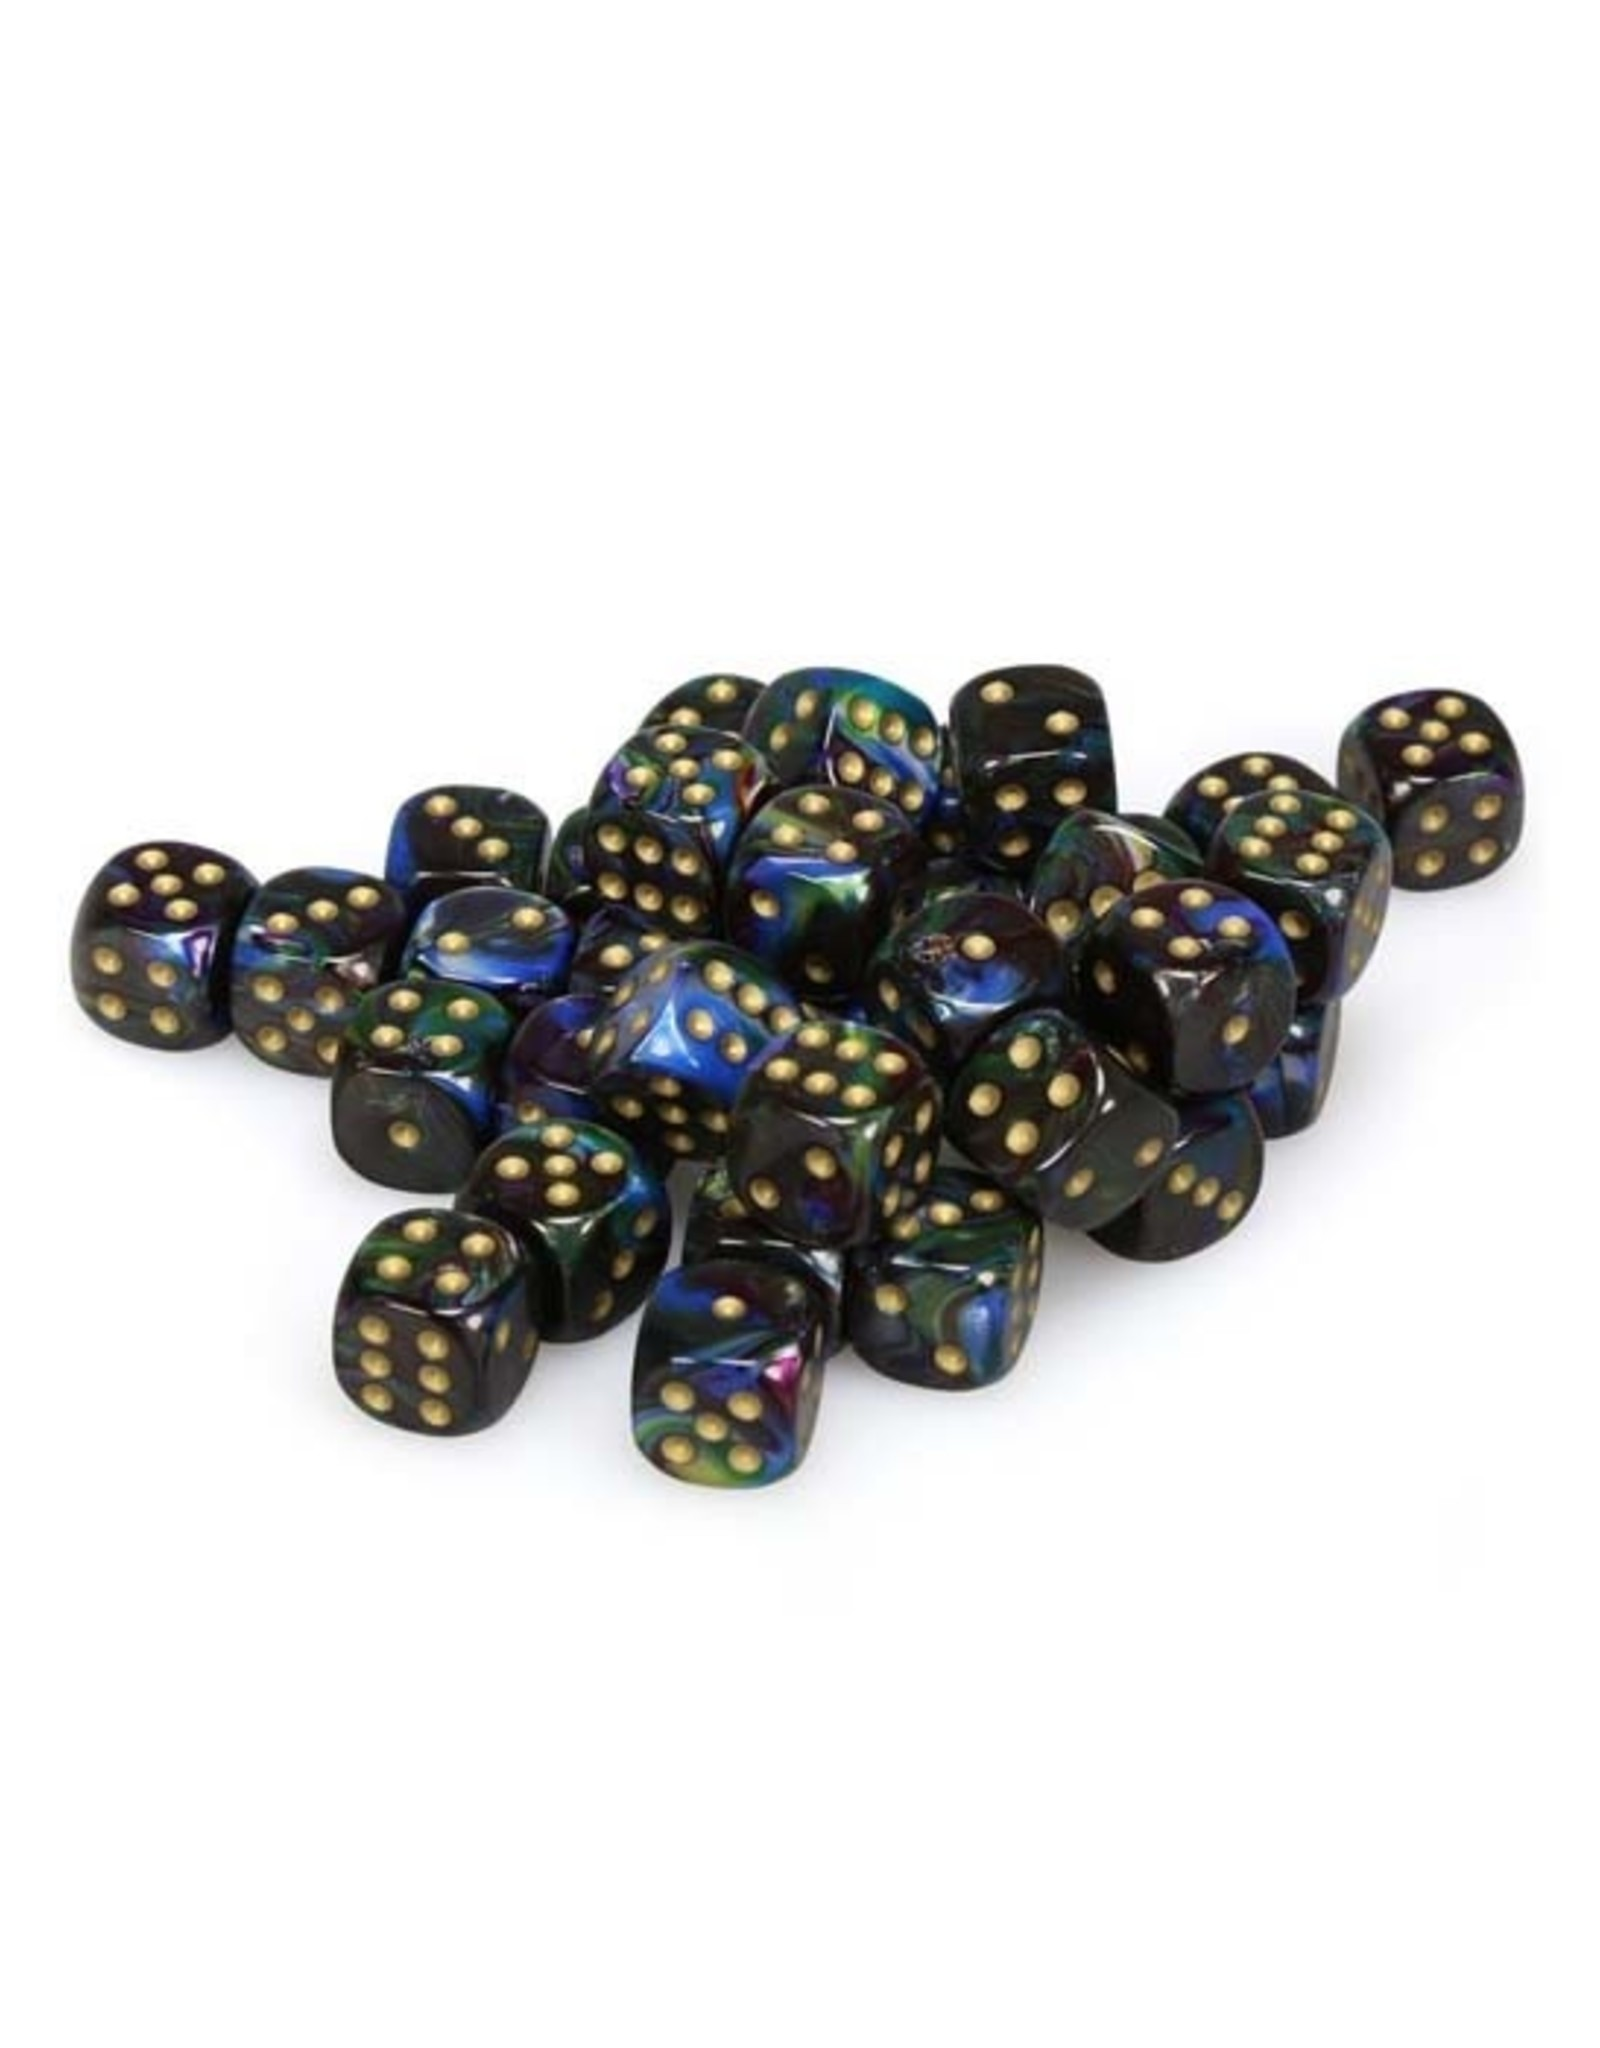 Chessex Chessex: 12mm D6 - Lustrous - Shadow w/ Gold